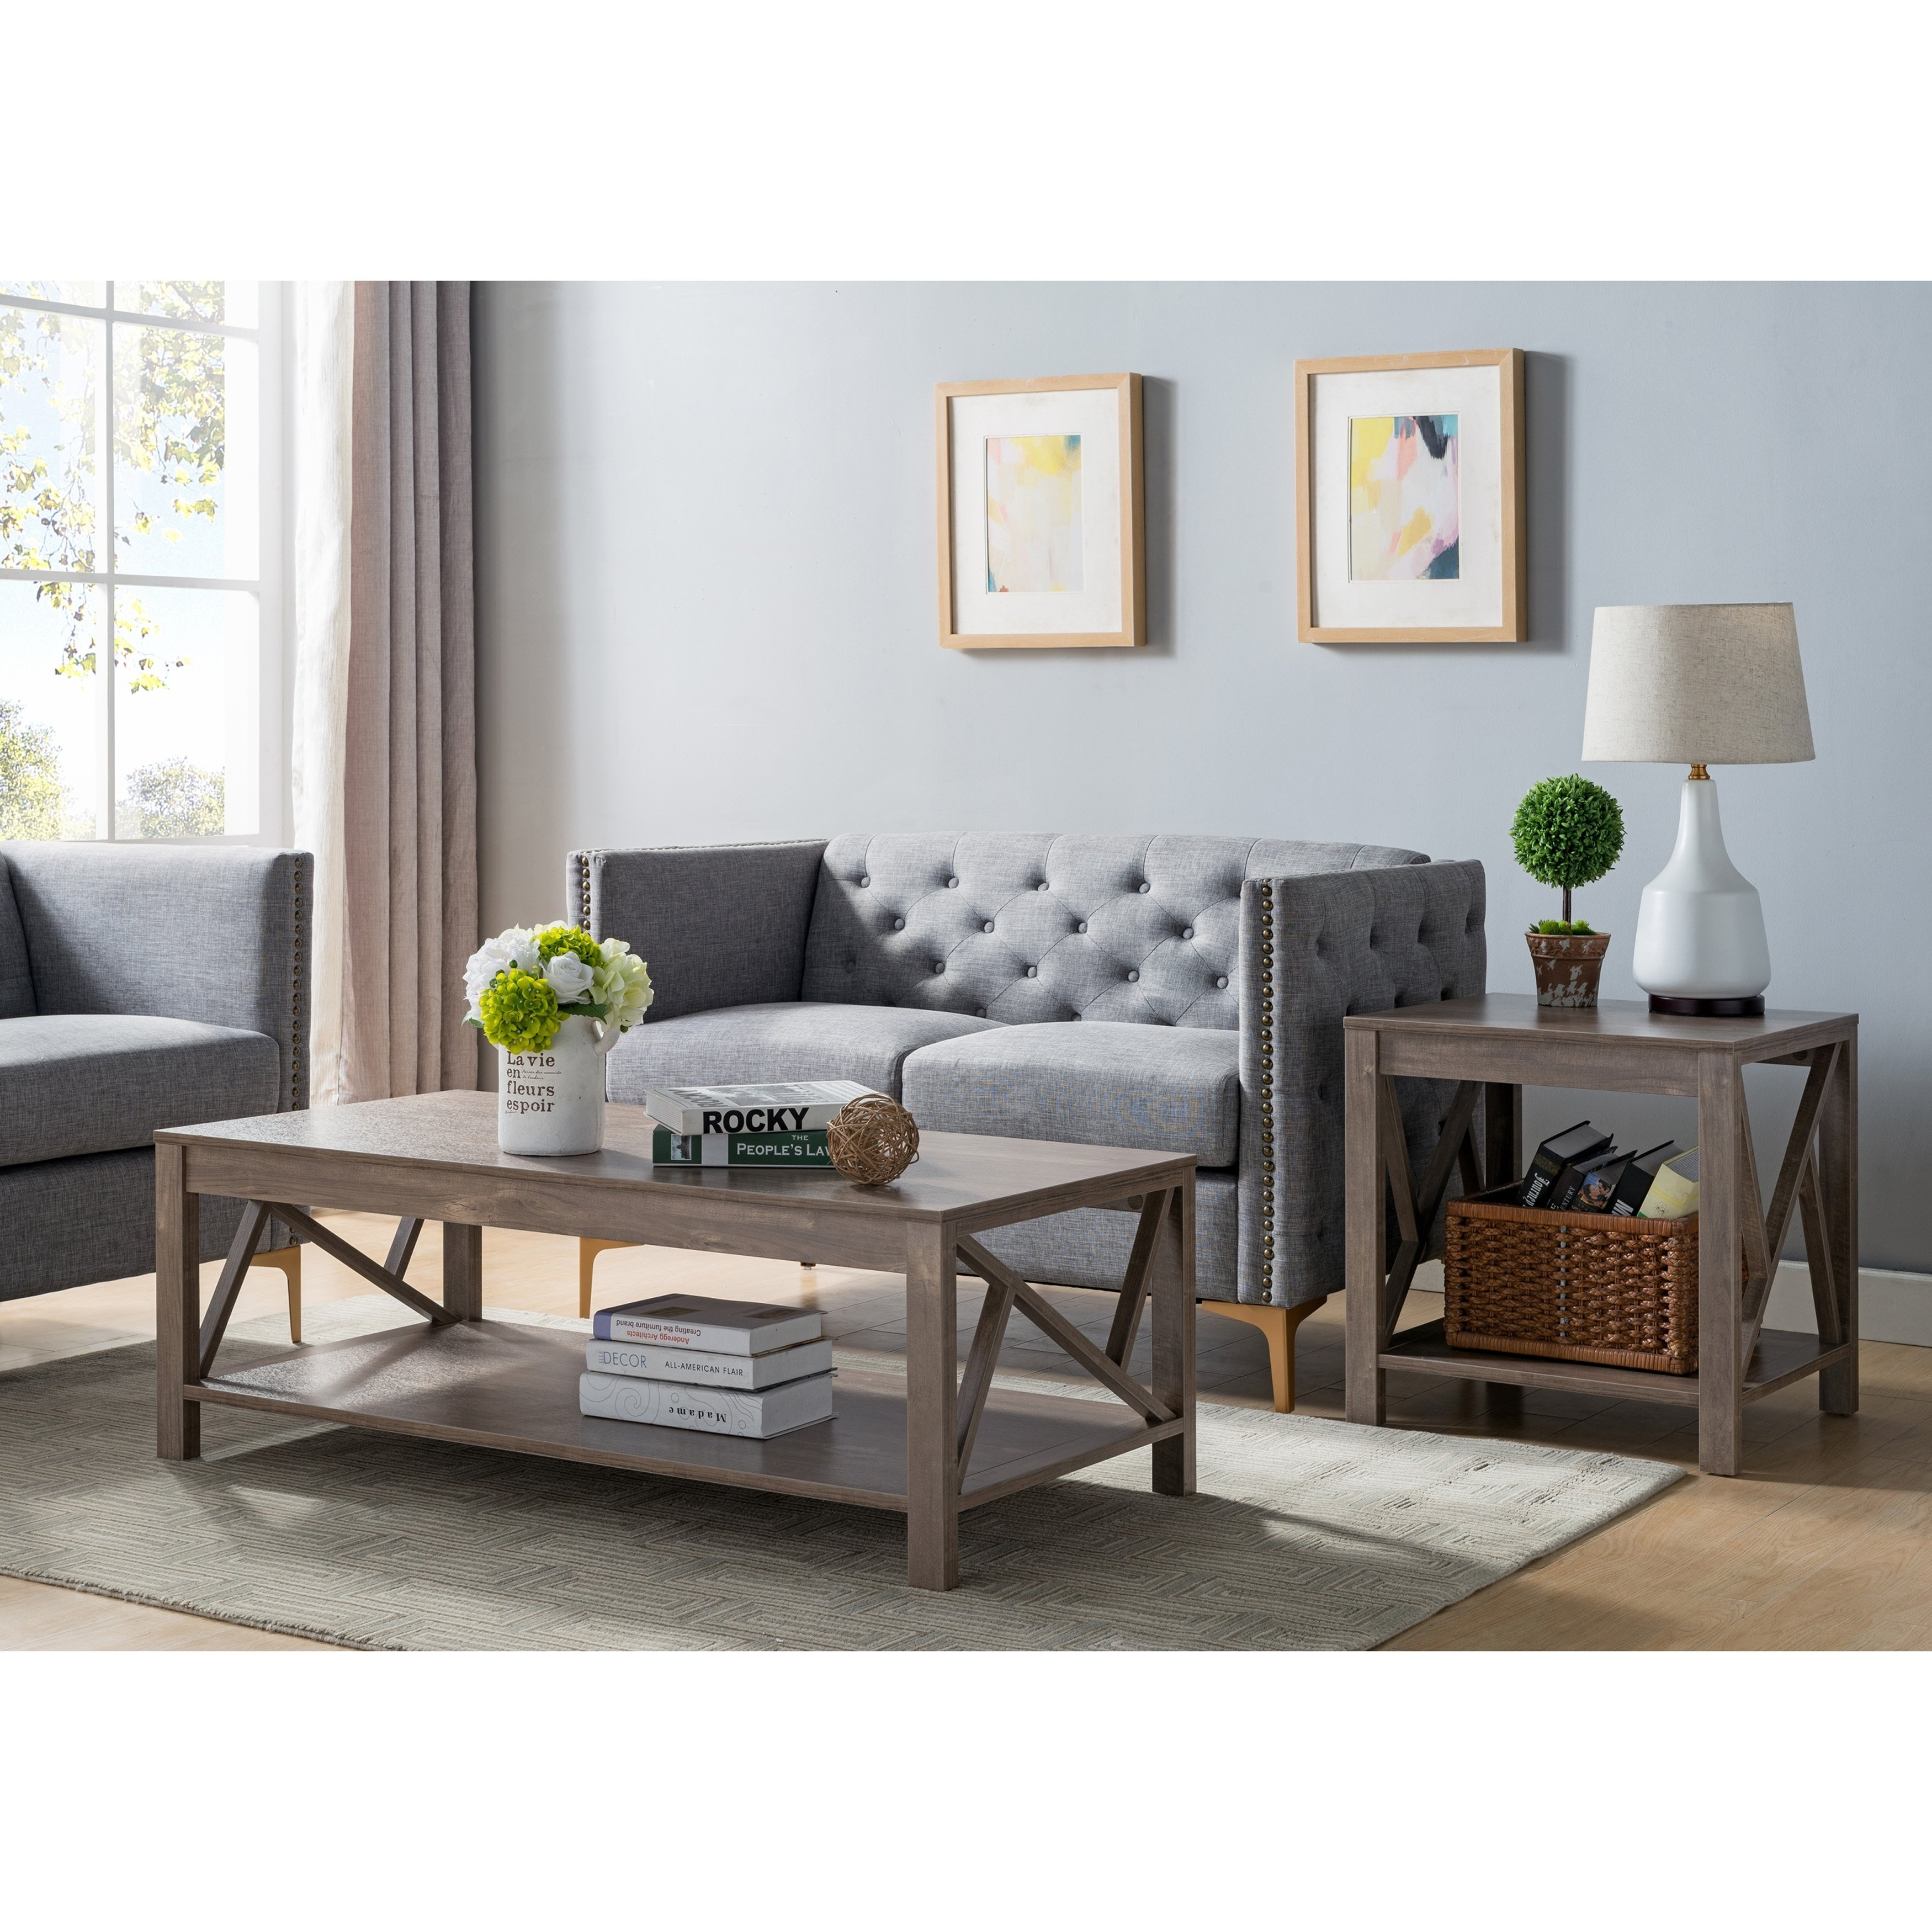 furniture america stamos rustic piece hazelnut accent table set gray free shipping today sheesham wood console bronze wall clock outdoor patio cover farm style dining room nesting